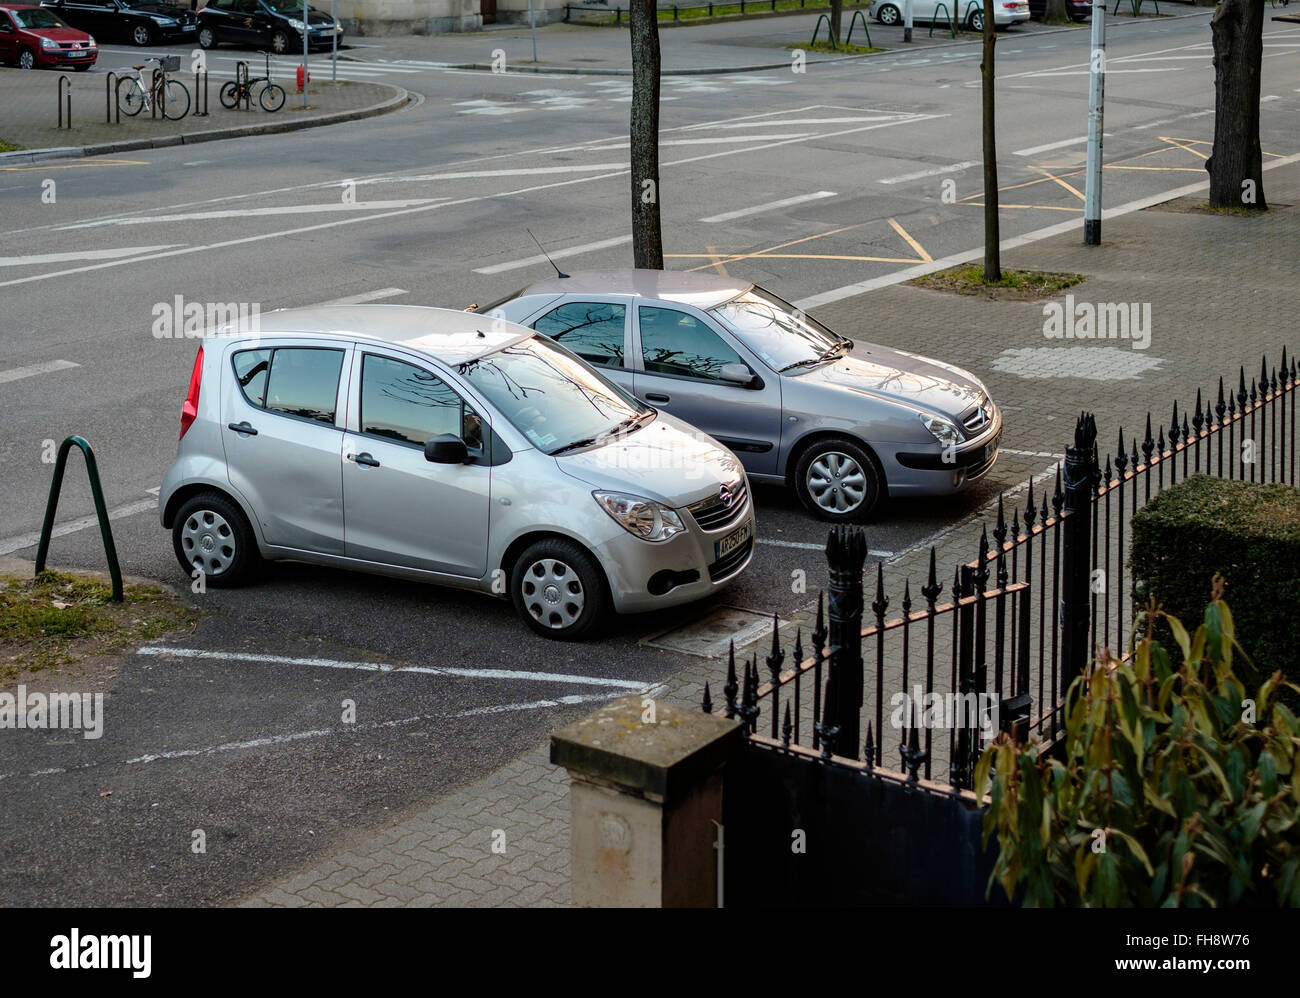 Two cars parked on pavement, Strasbourg, Alsace, France - Stock Image